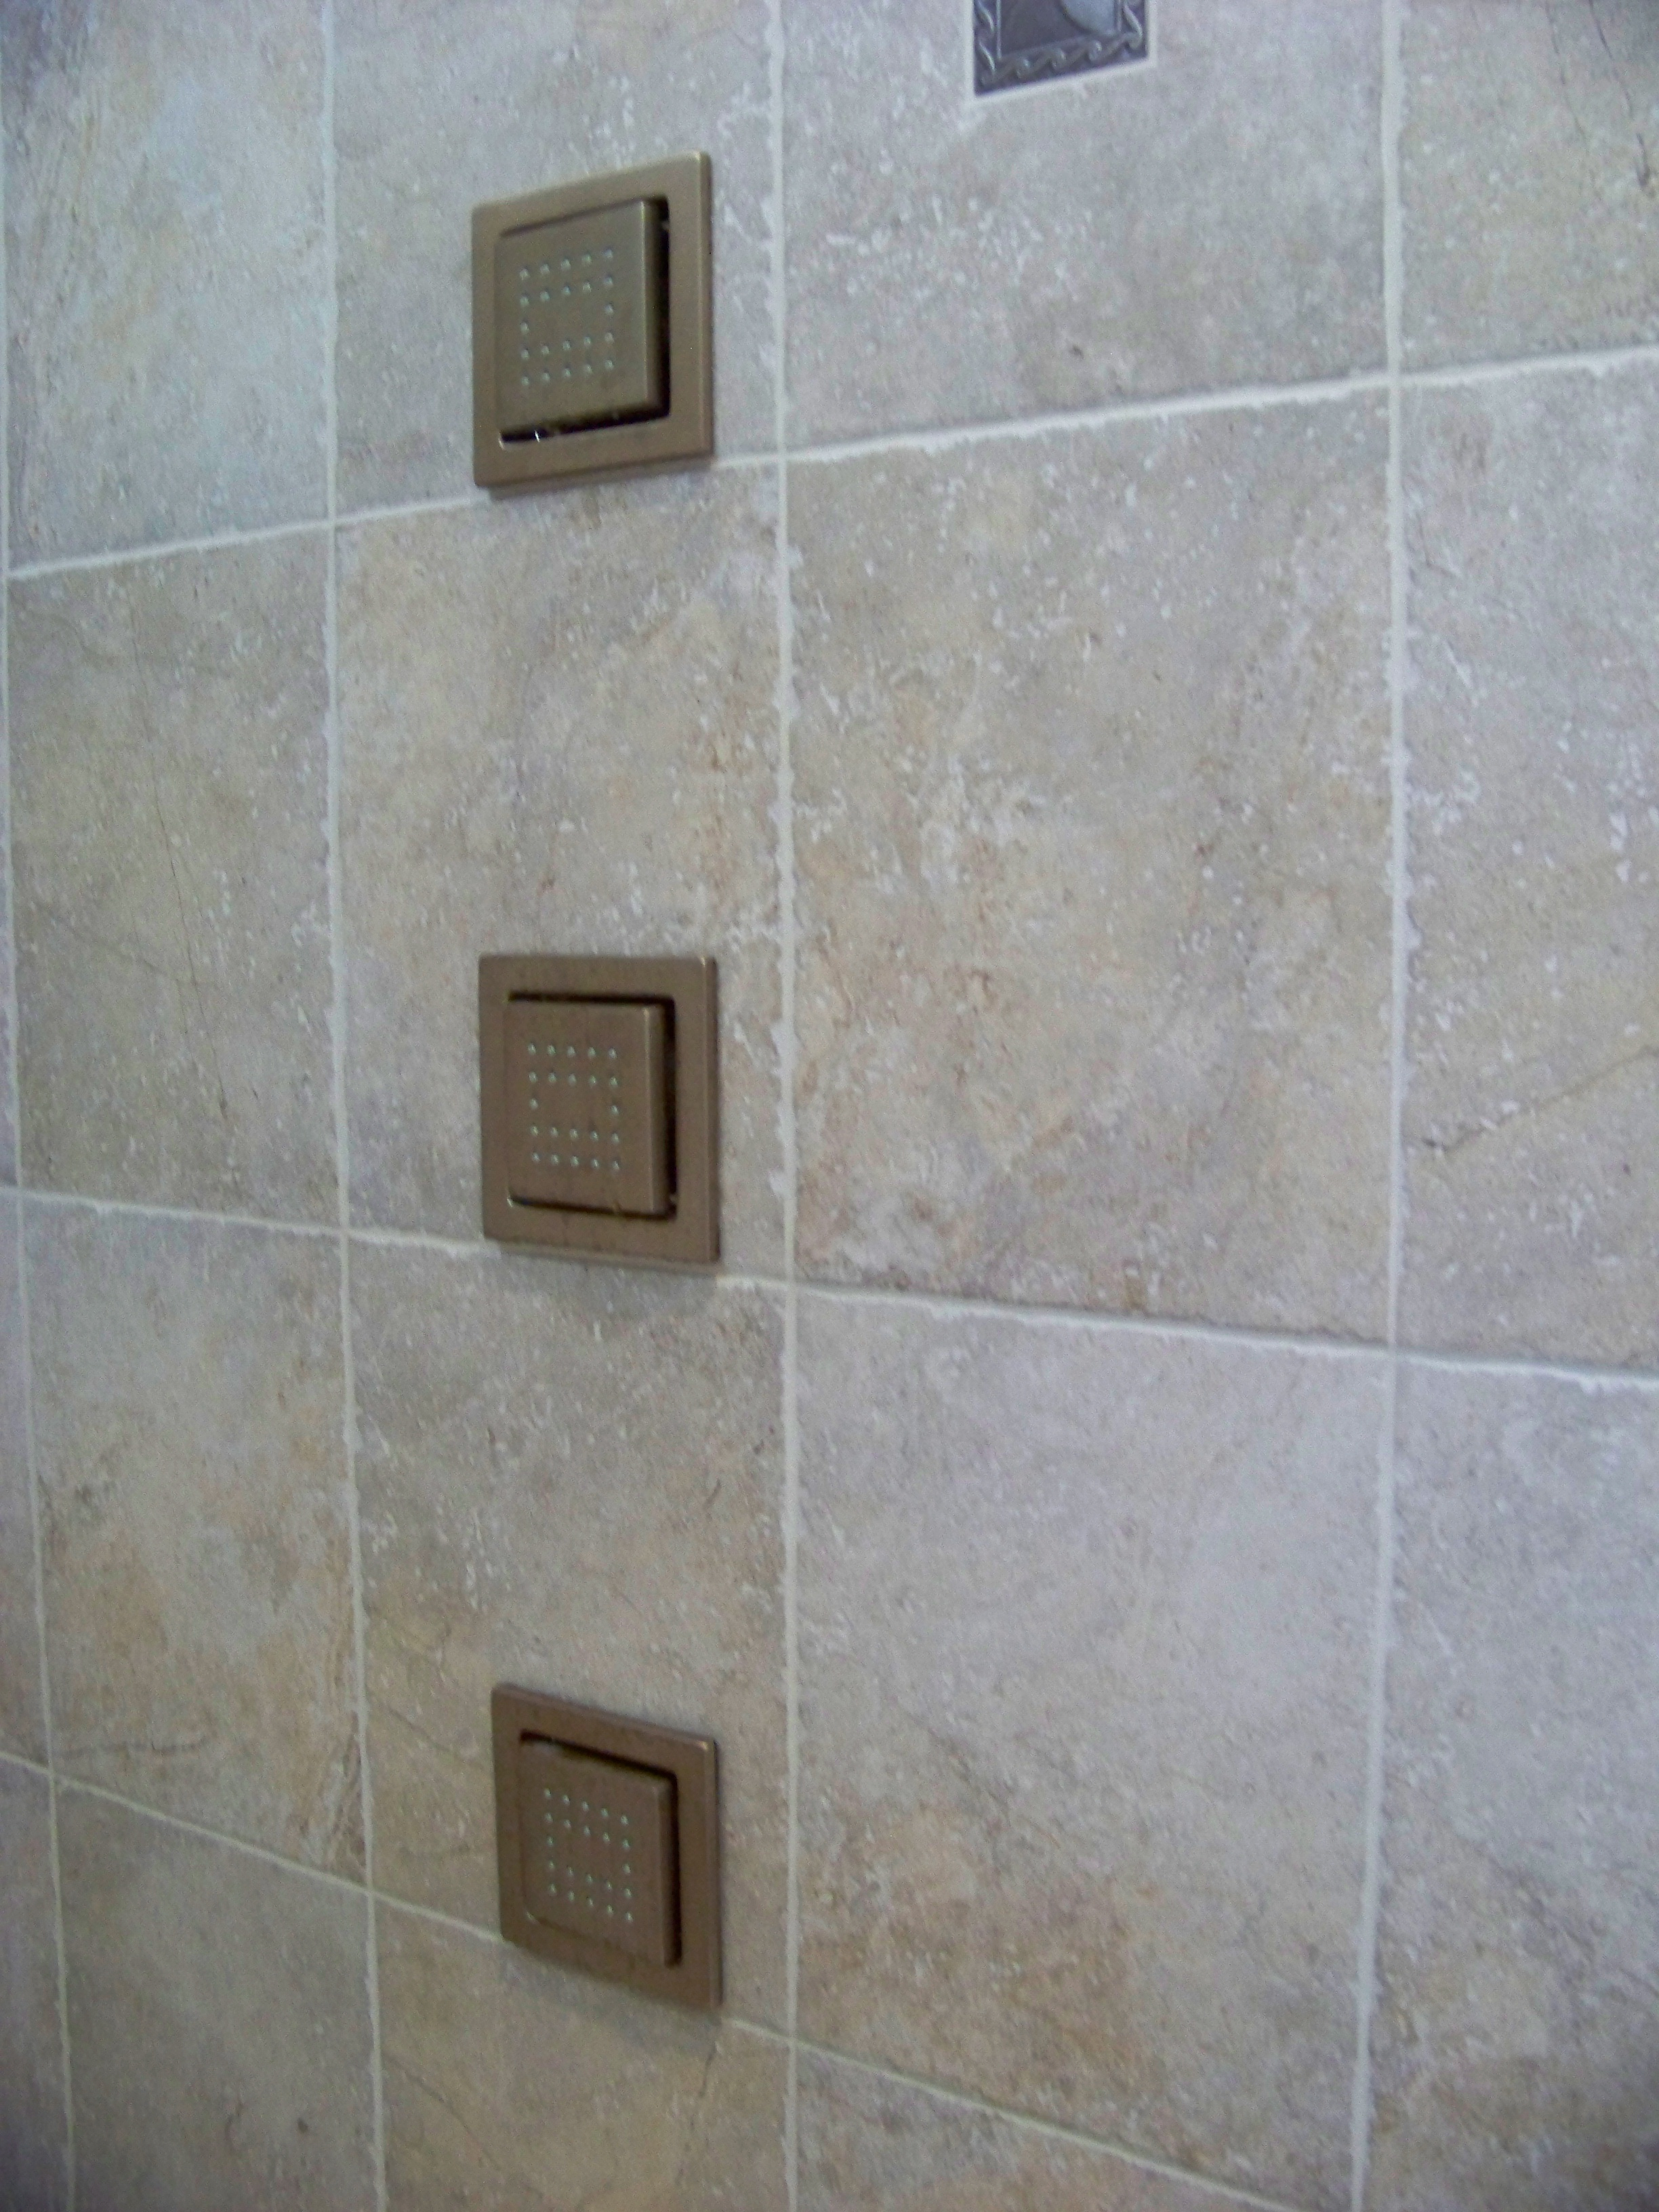 Shower wall jets